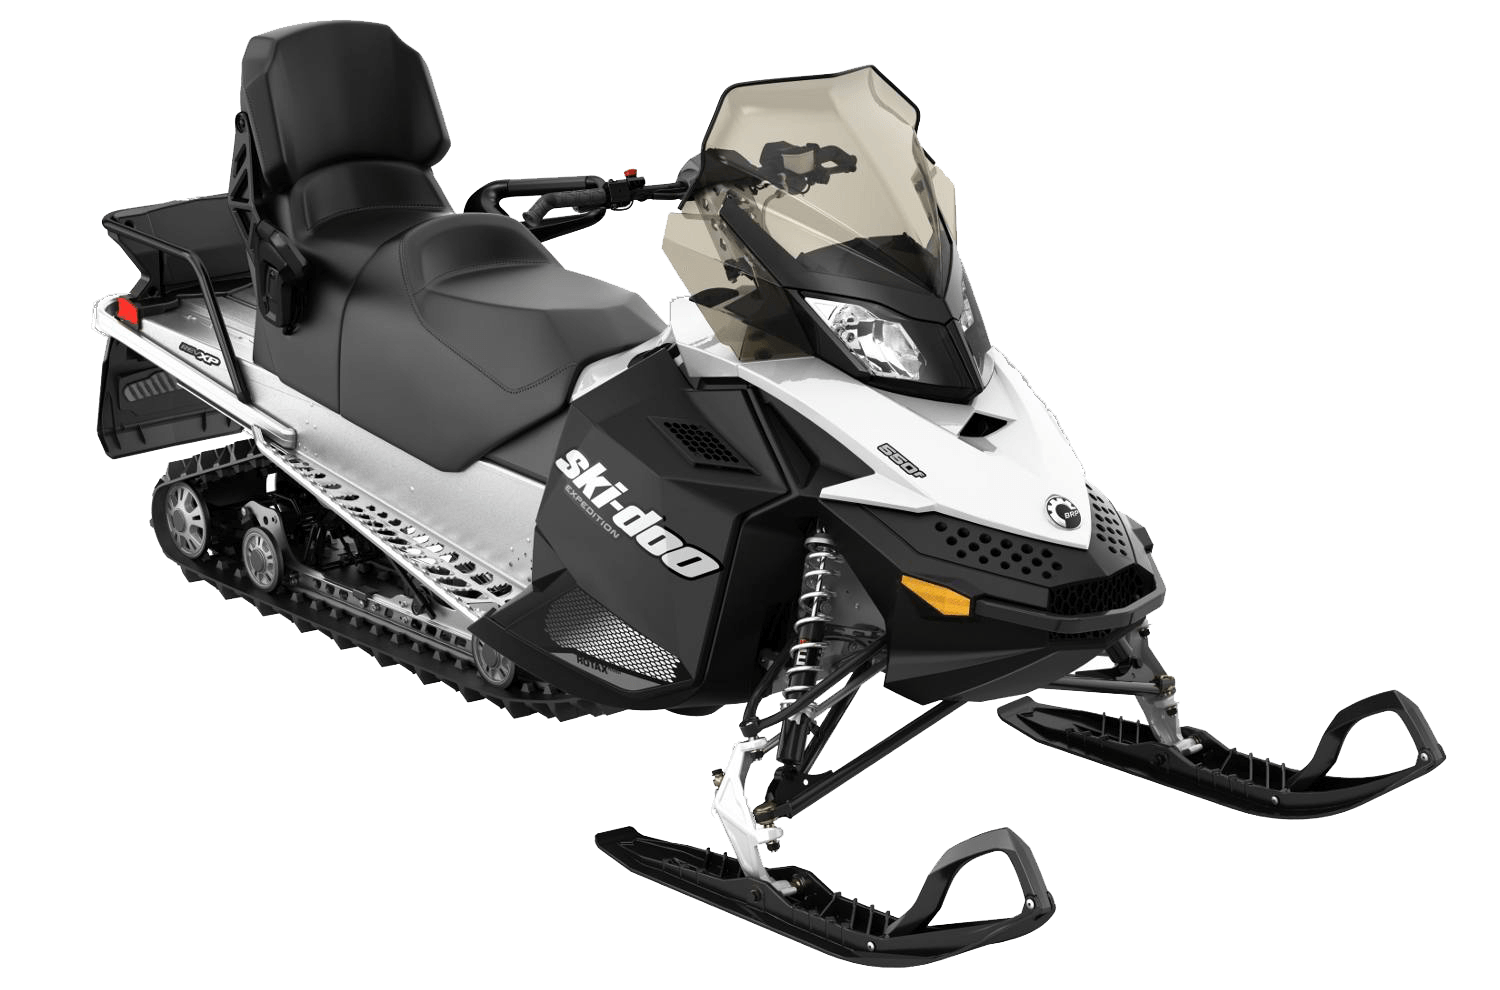 ski-doo expedition snowmobile rental golden